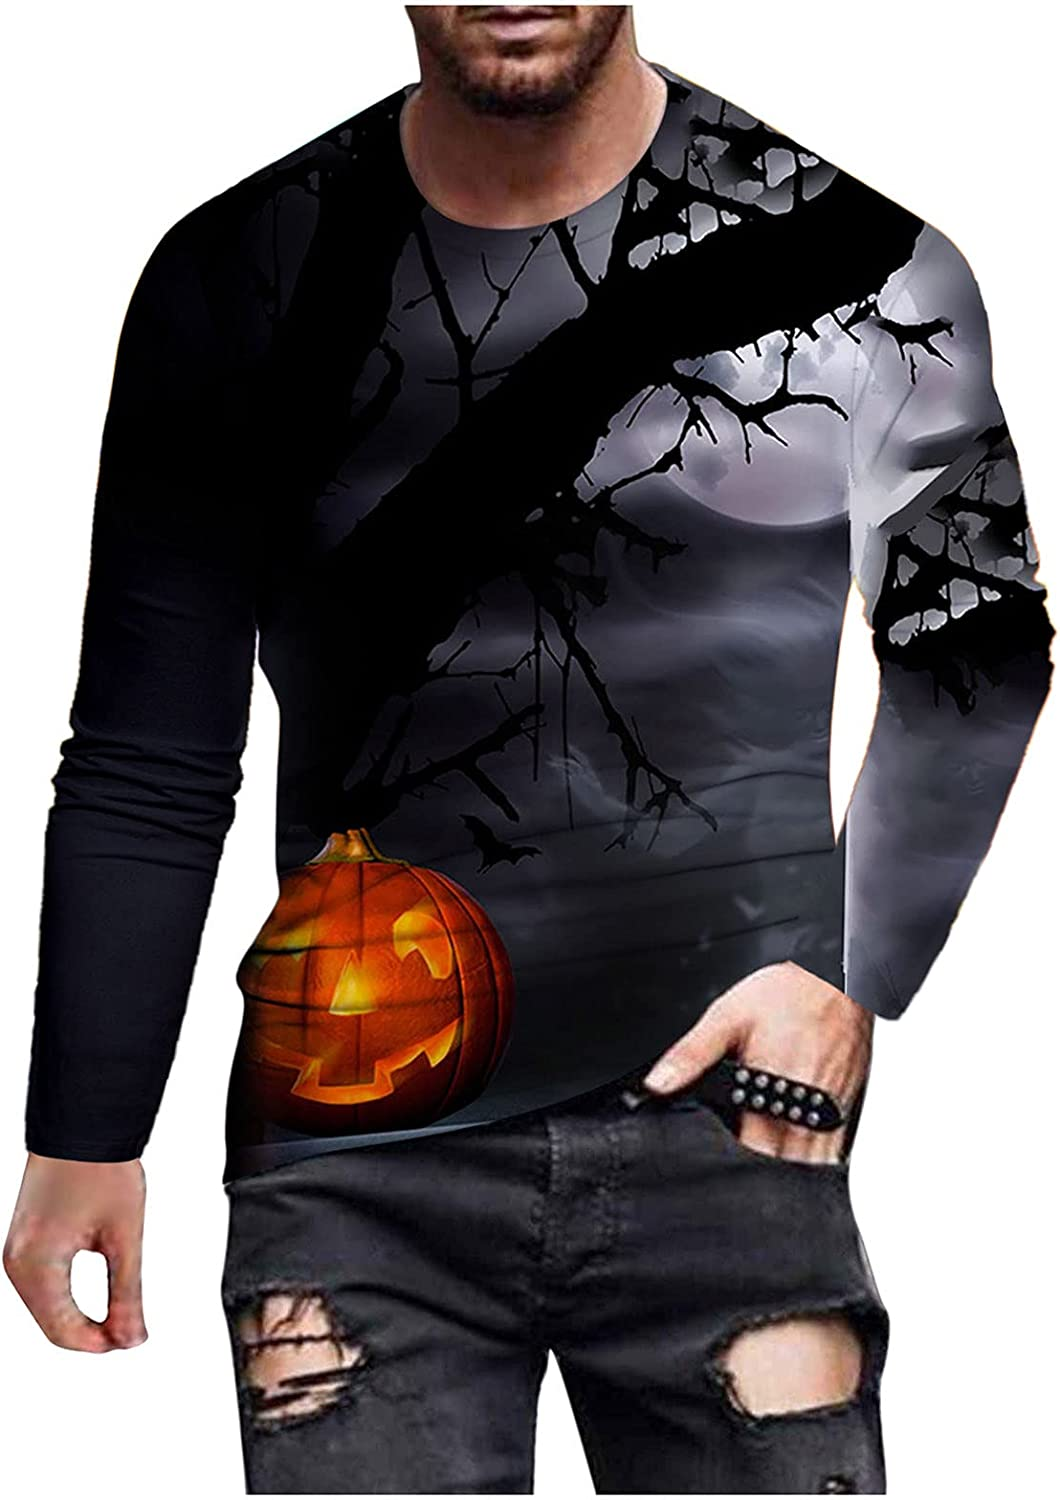 xoxing Halloween Shirts for Men Casual Autumn Crew Neck Long Sleeve Tops Funny 3D Digital Printed Loose Blouse Pullover